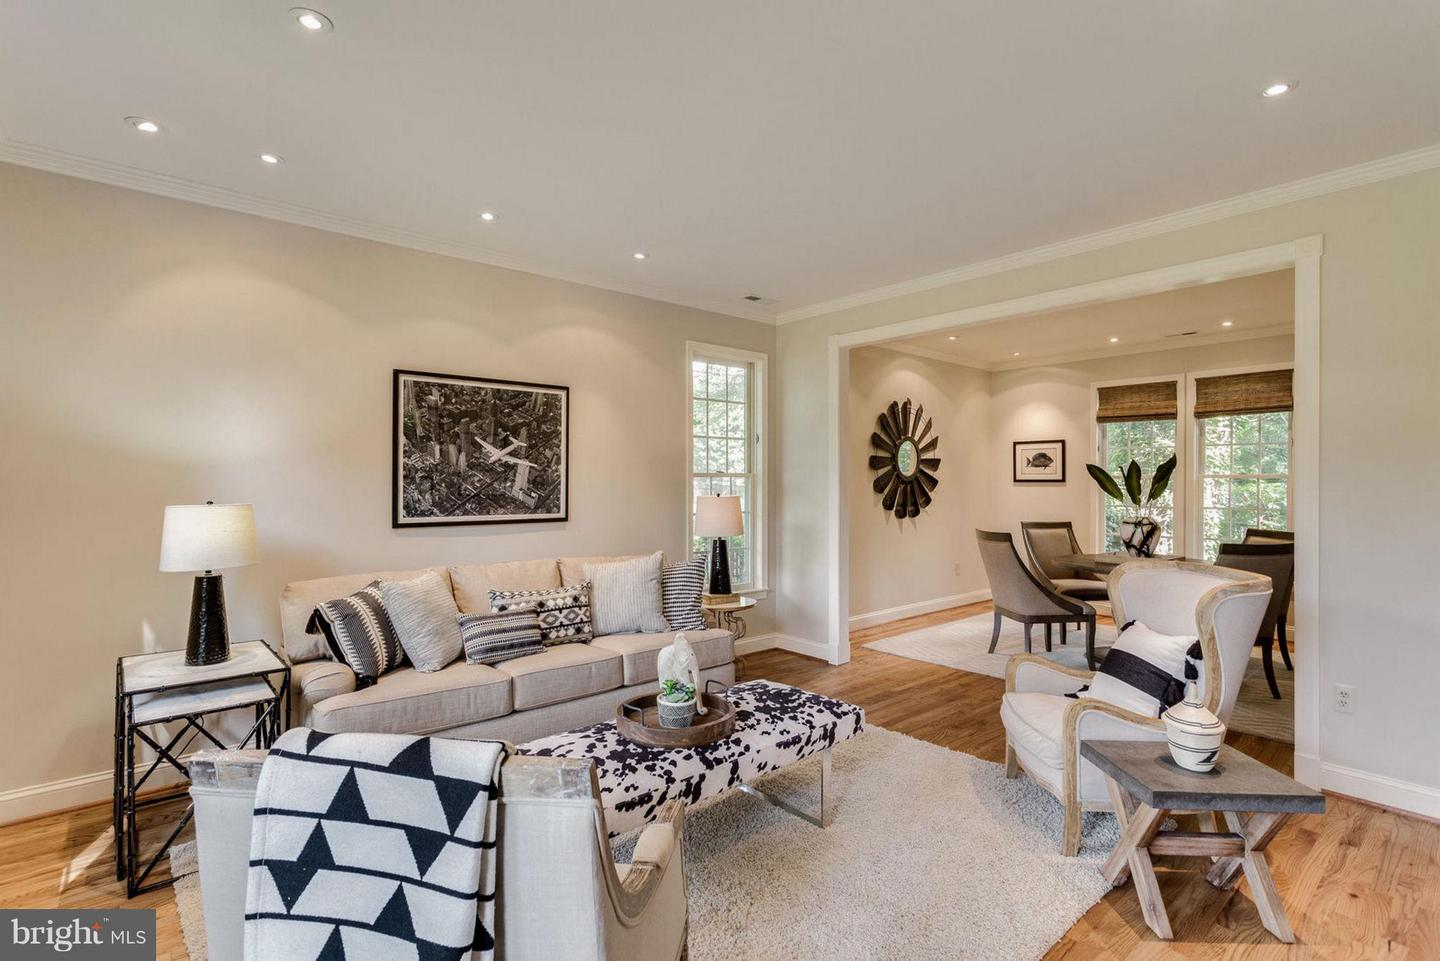 Additional photo for property listing at 1262 Olde Towne Rd 1262 Olde Towne Rd Alexandria, Virginia 22307 United States